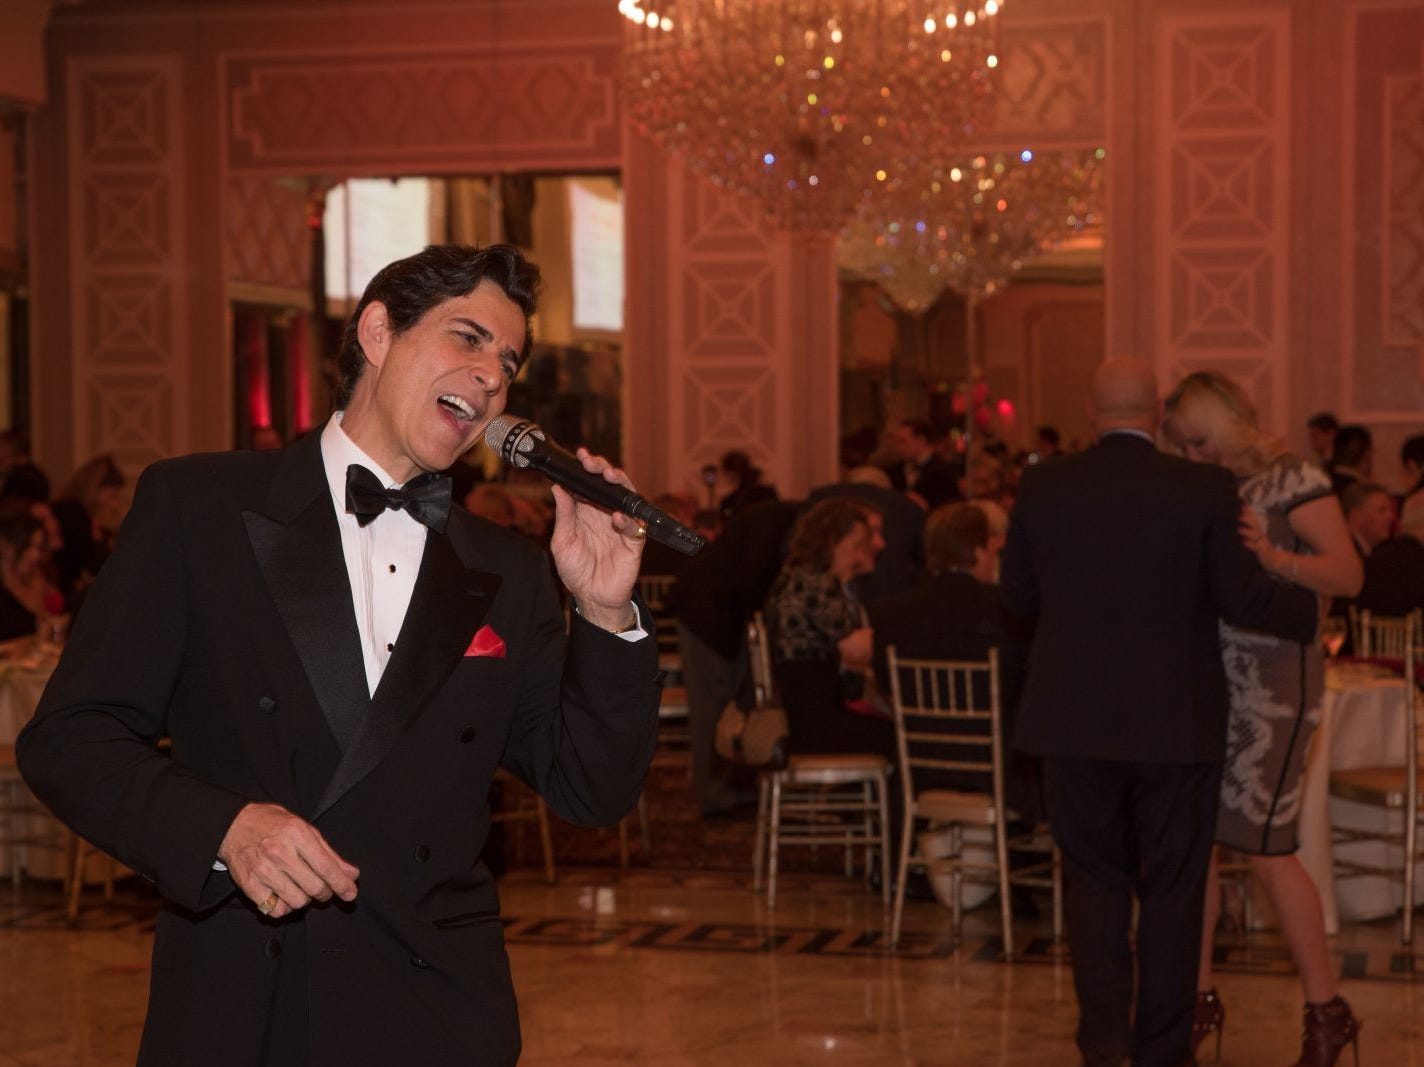 Eddie Pirrera, entertaining the guests. Bergen Catholic High School celebrates their 2018 Crusader Gala at The Venetian in Garfield. 11/16/2018